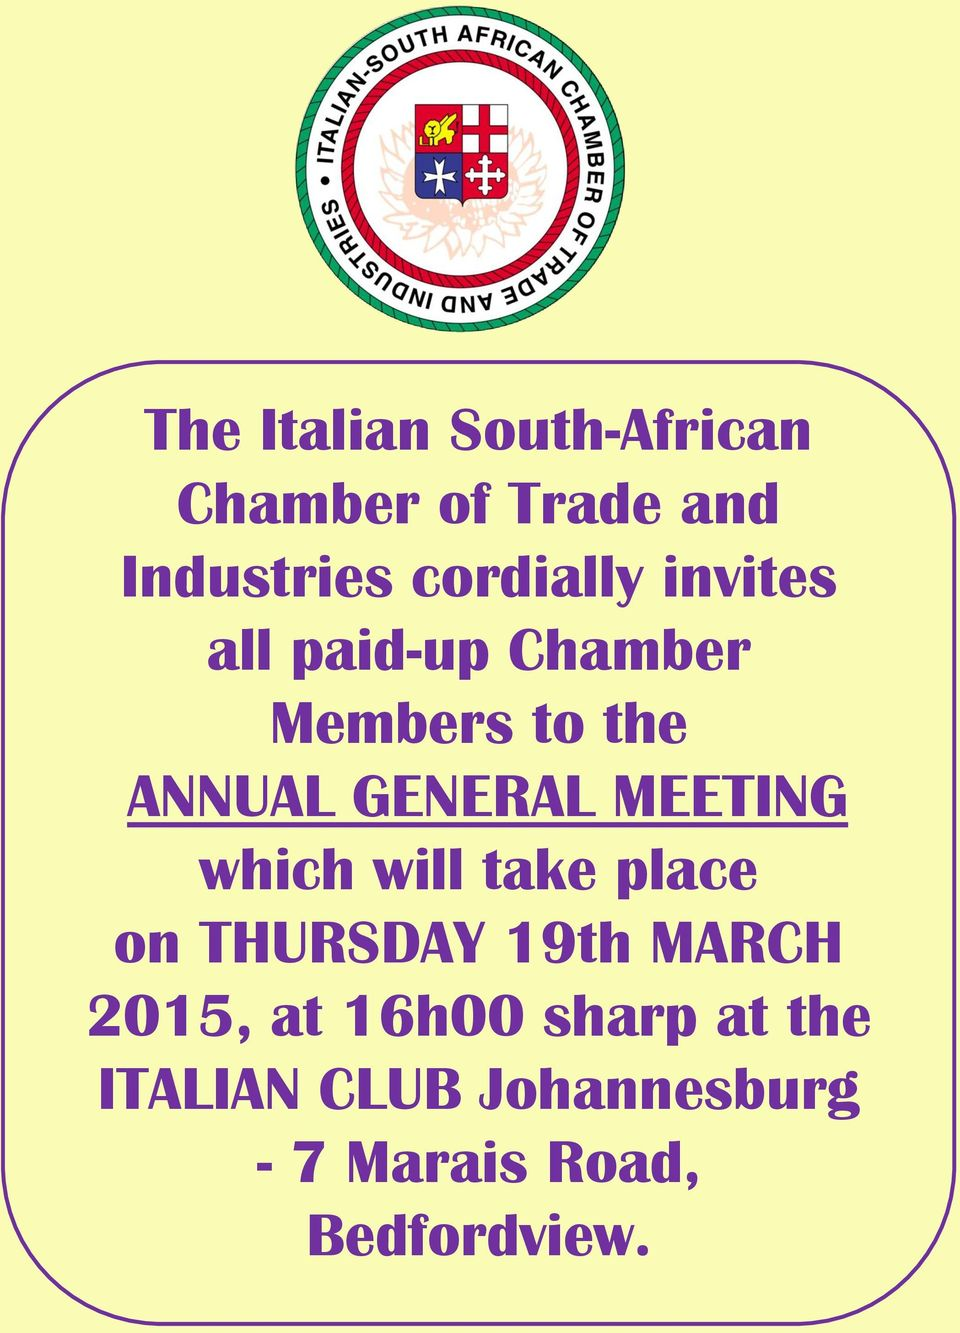 GENERAL MEETING which will take place on THURSDAY 19th MARCH